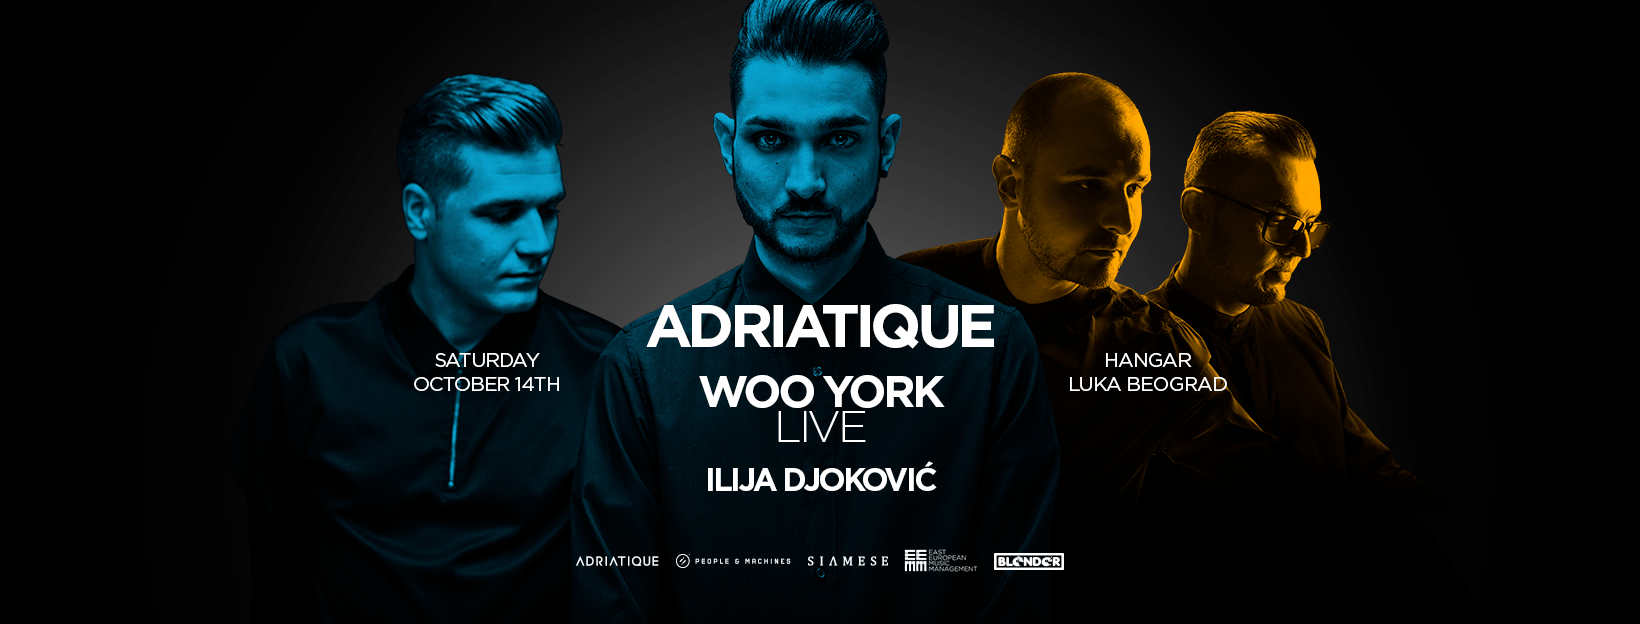 Adriatique I Woo York, Hangar